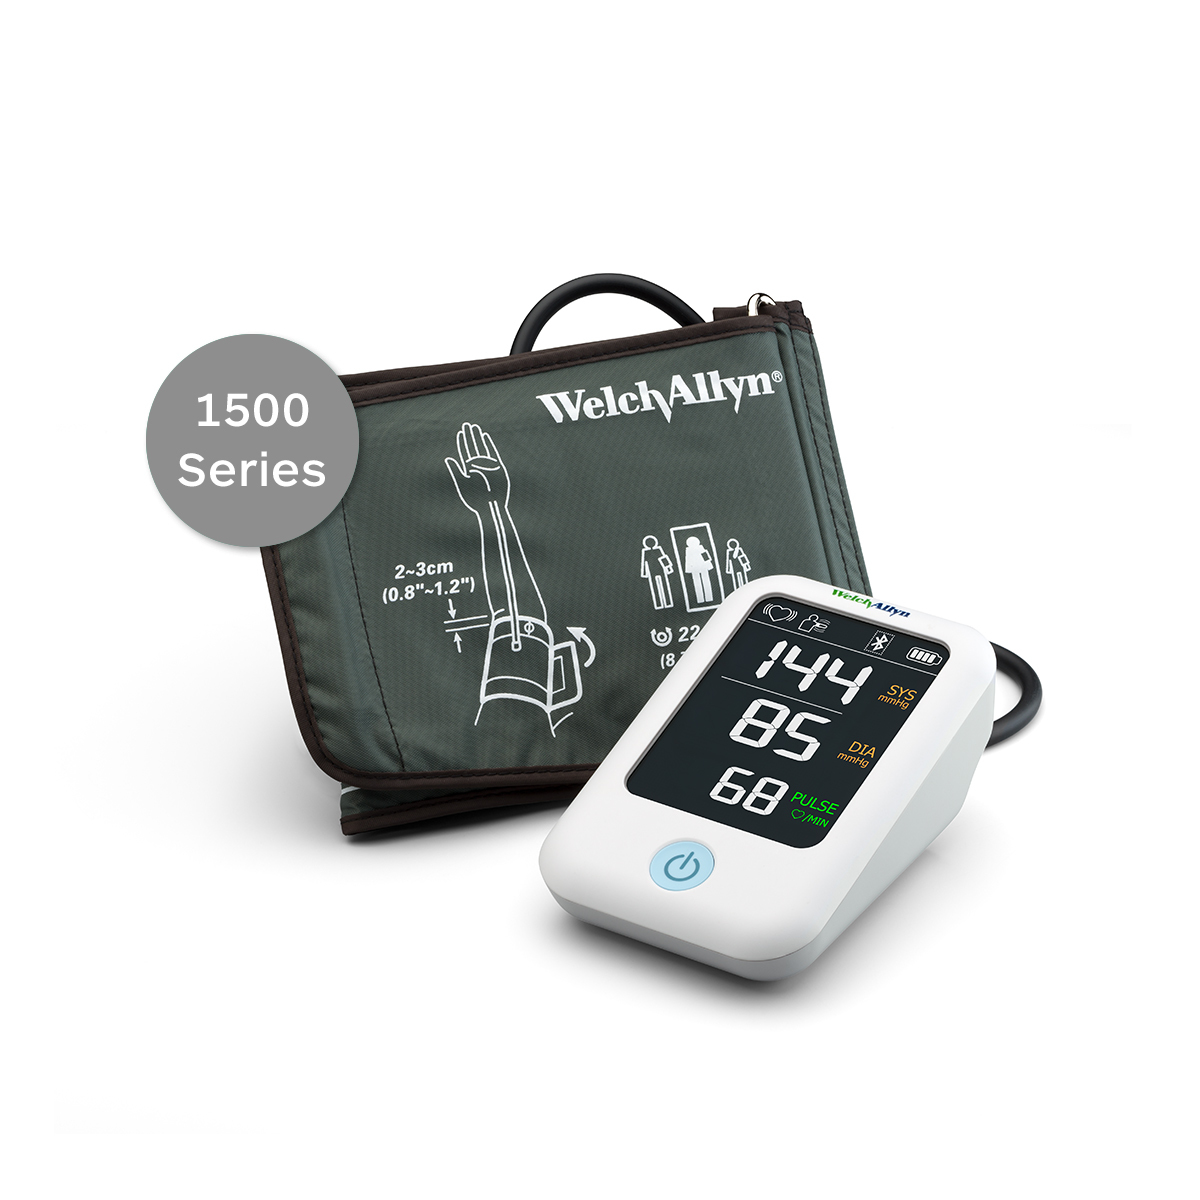 Welch Allyn Home Blood Pressure Monitor 1500 Series